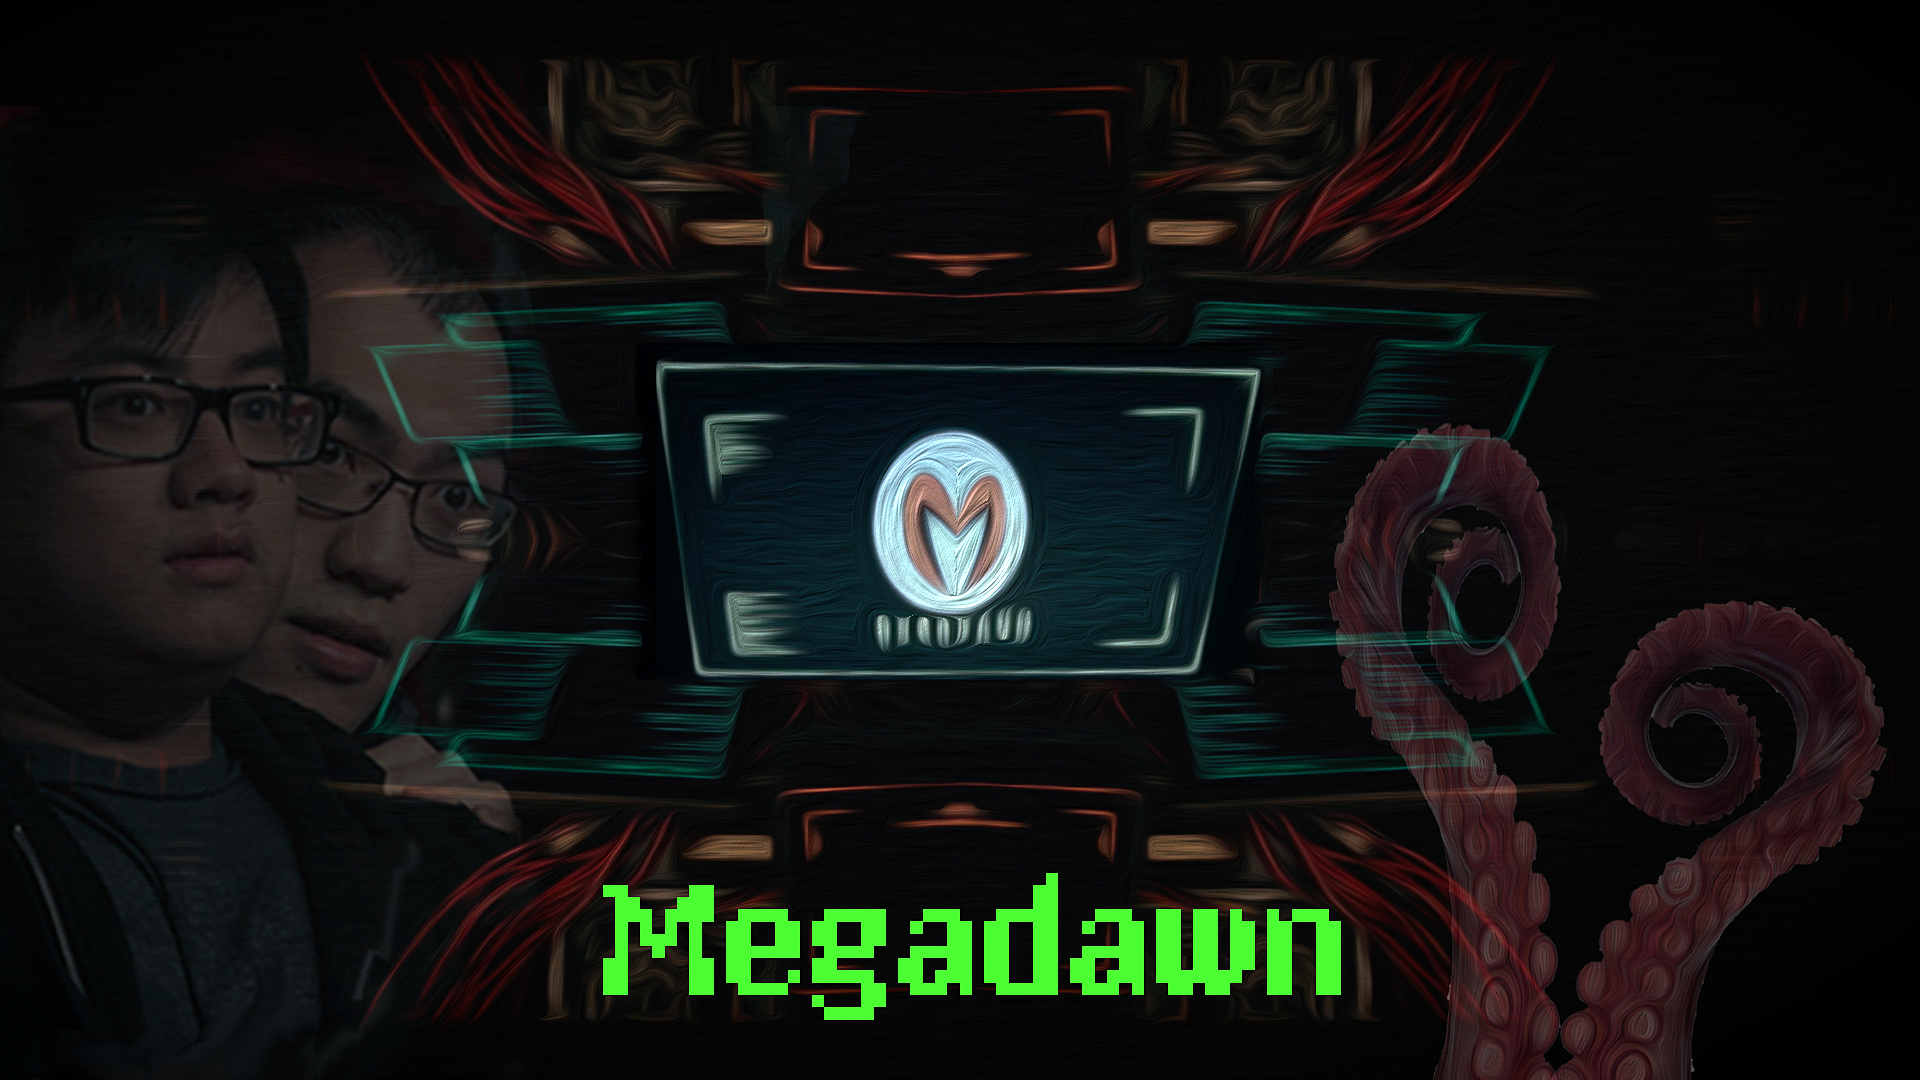 Megadawn optional #1